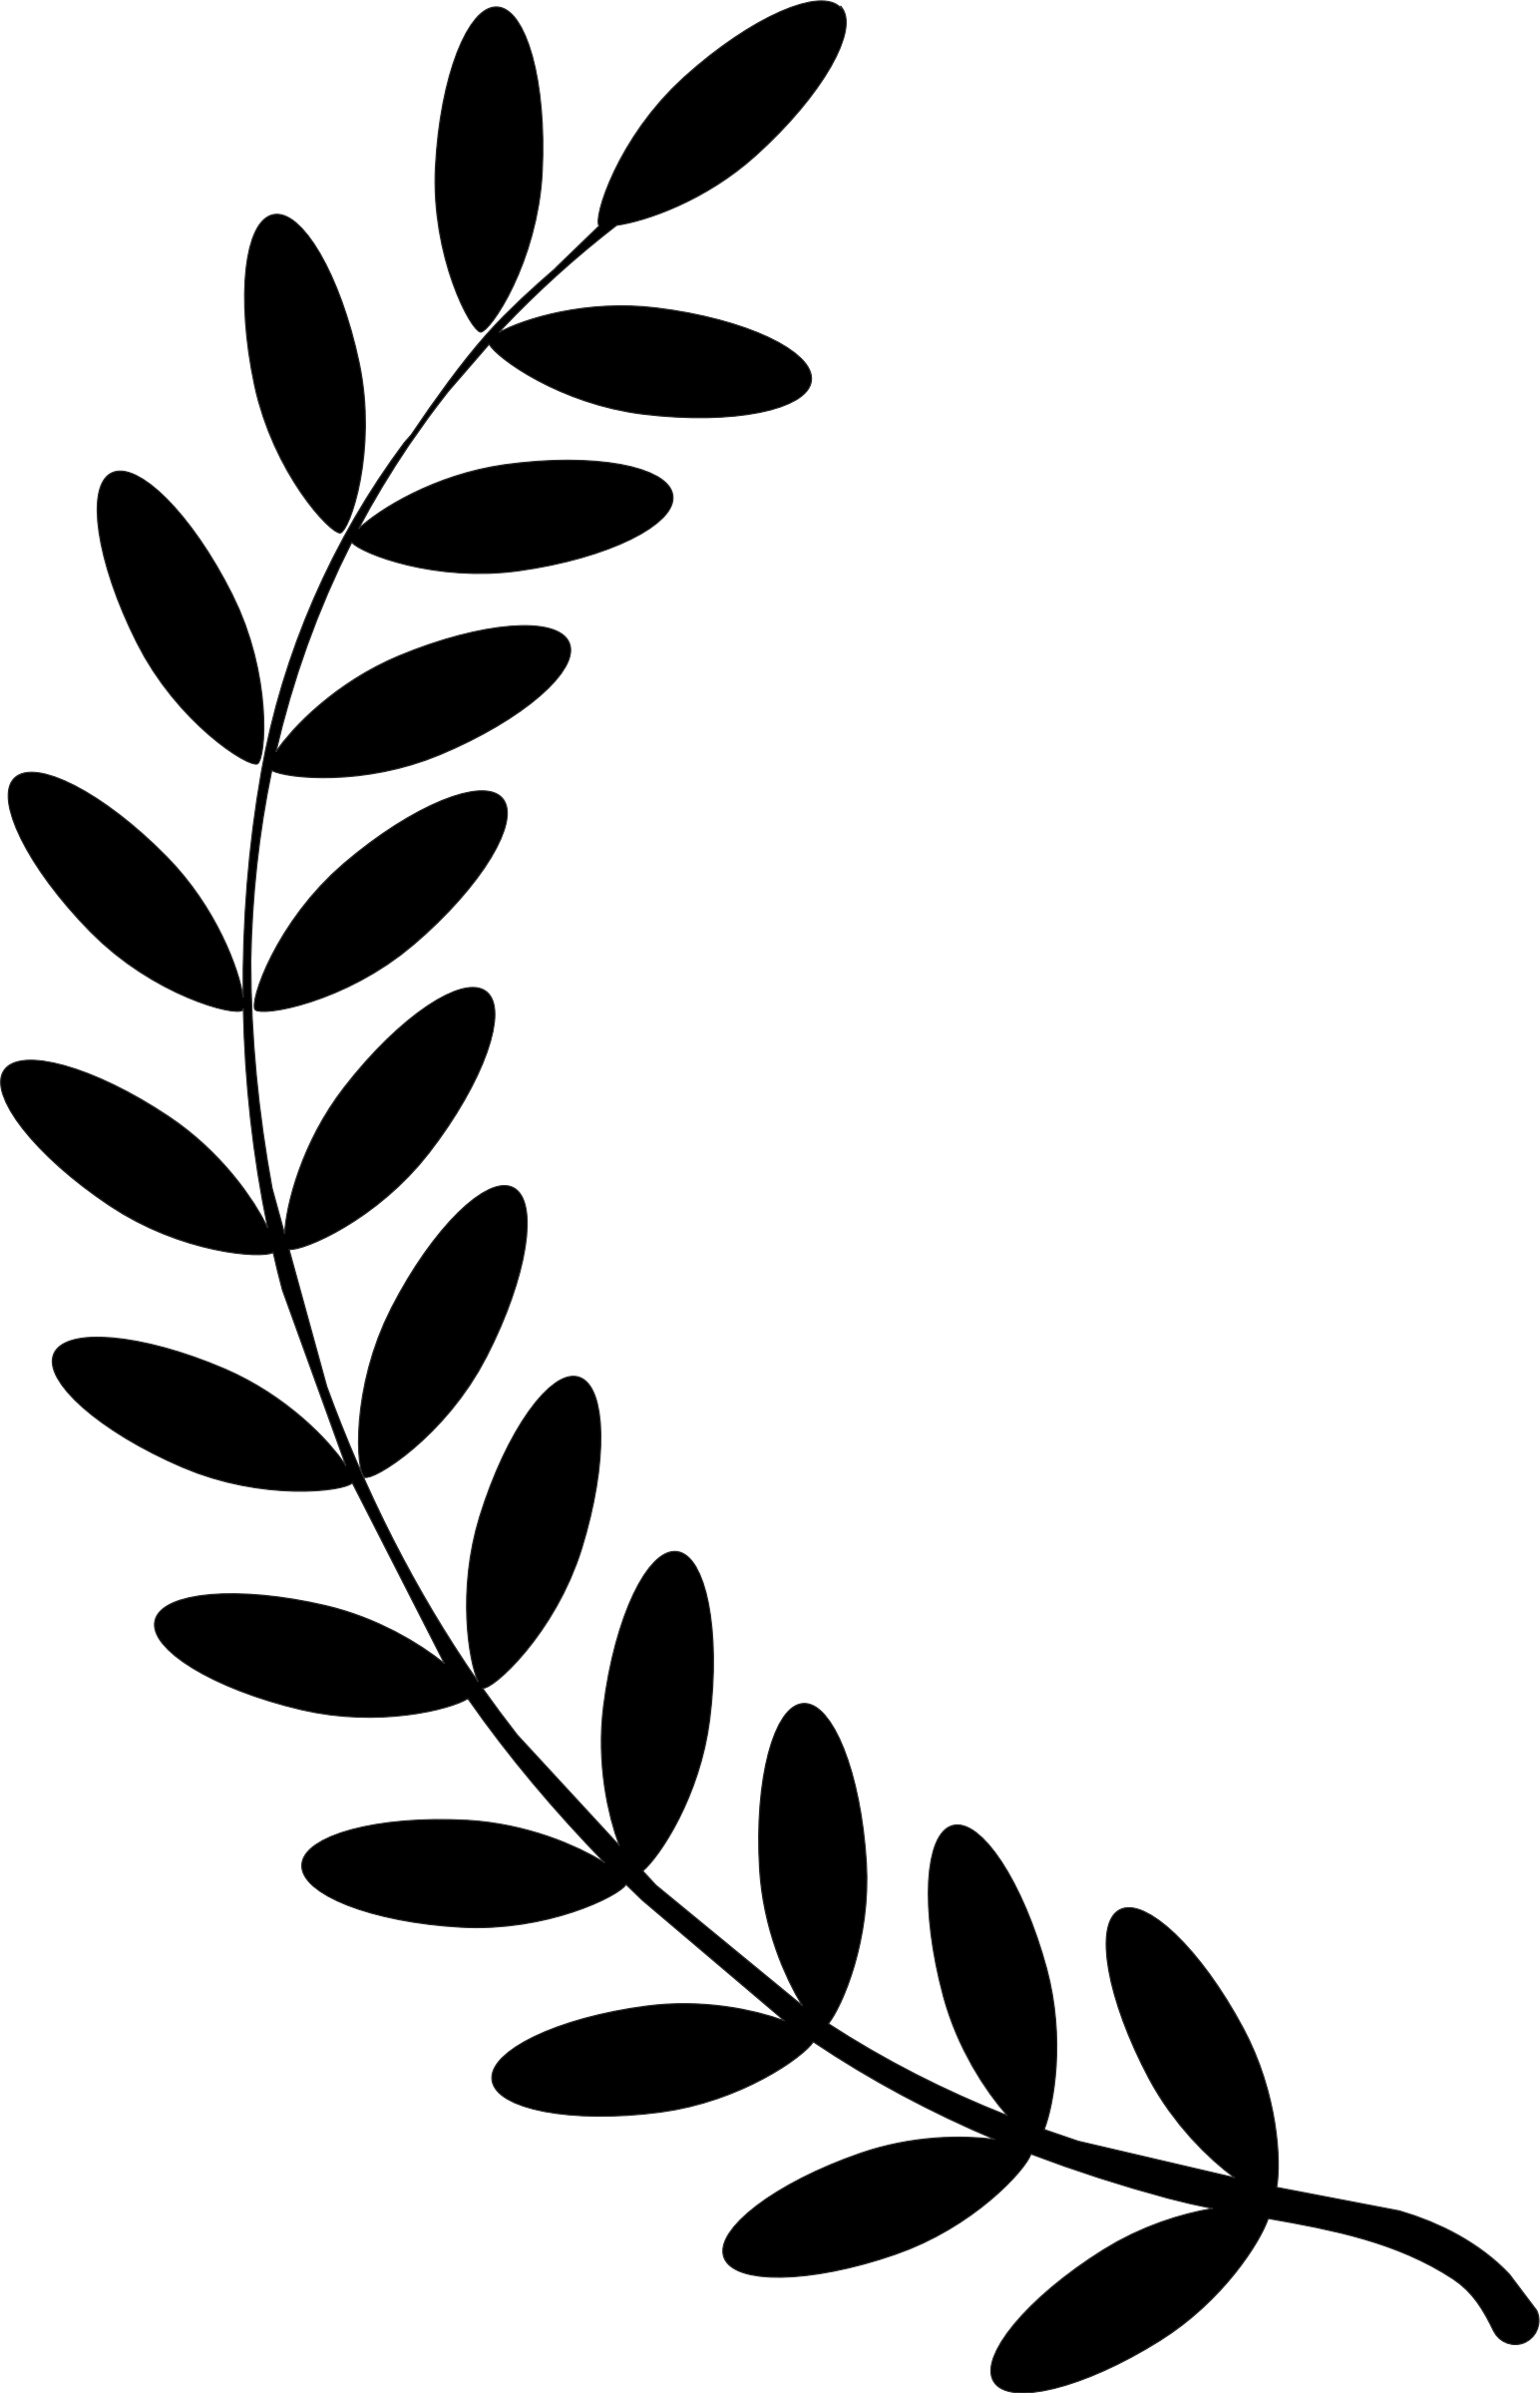 Branch wreath png. Collection of laurel